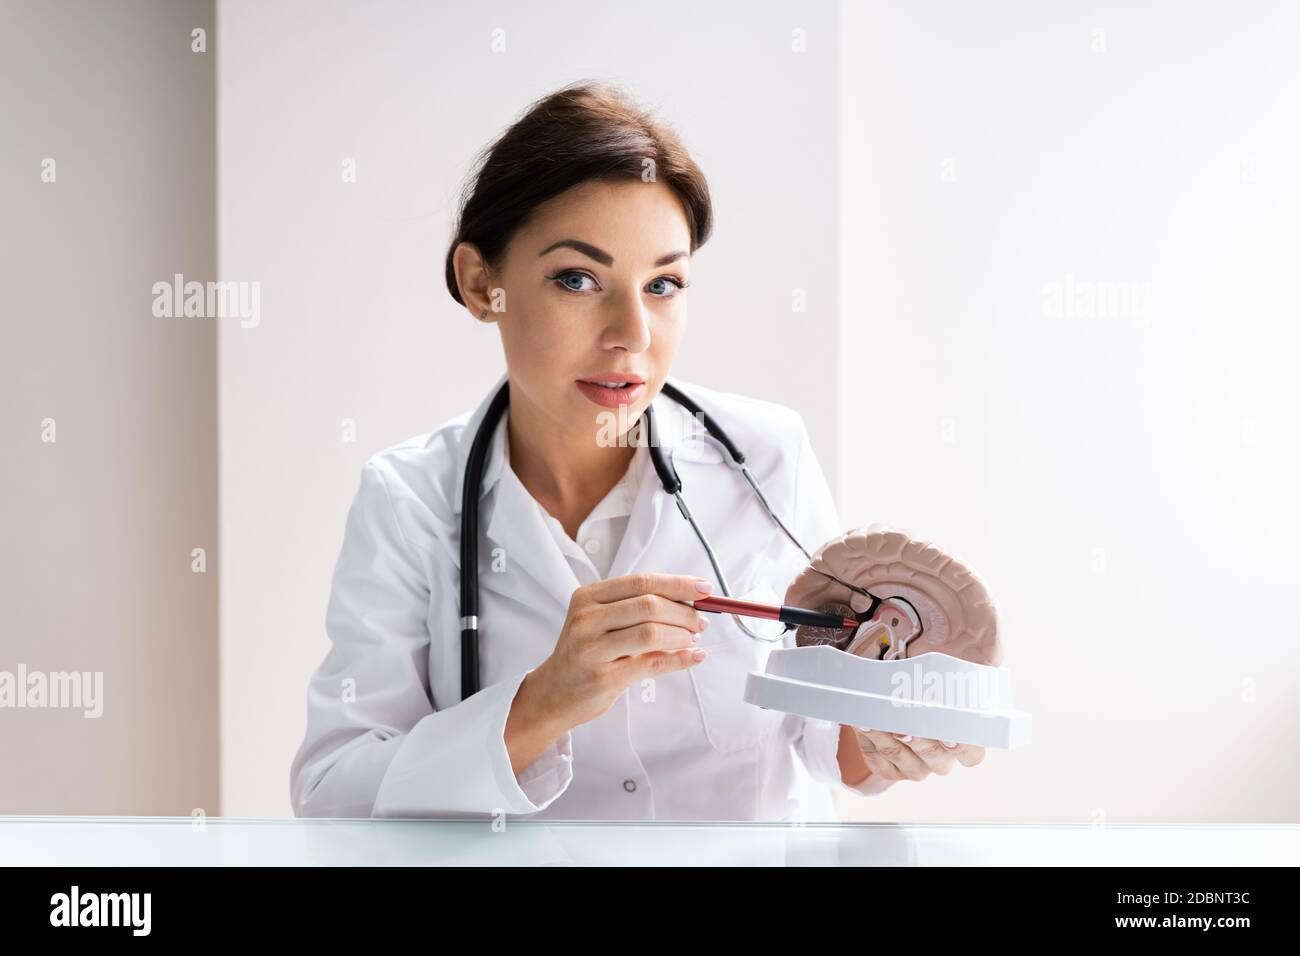 Brain Surgeon Or Neurologist Doctor Explaining To Patient Stock Photo